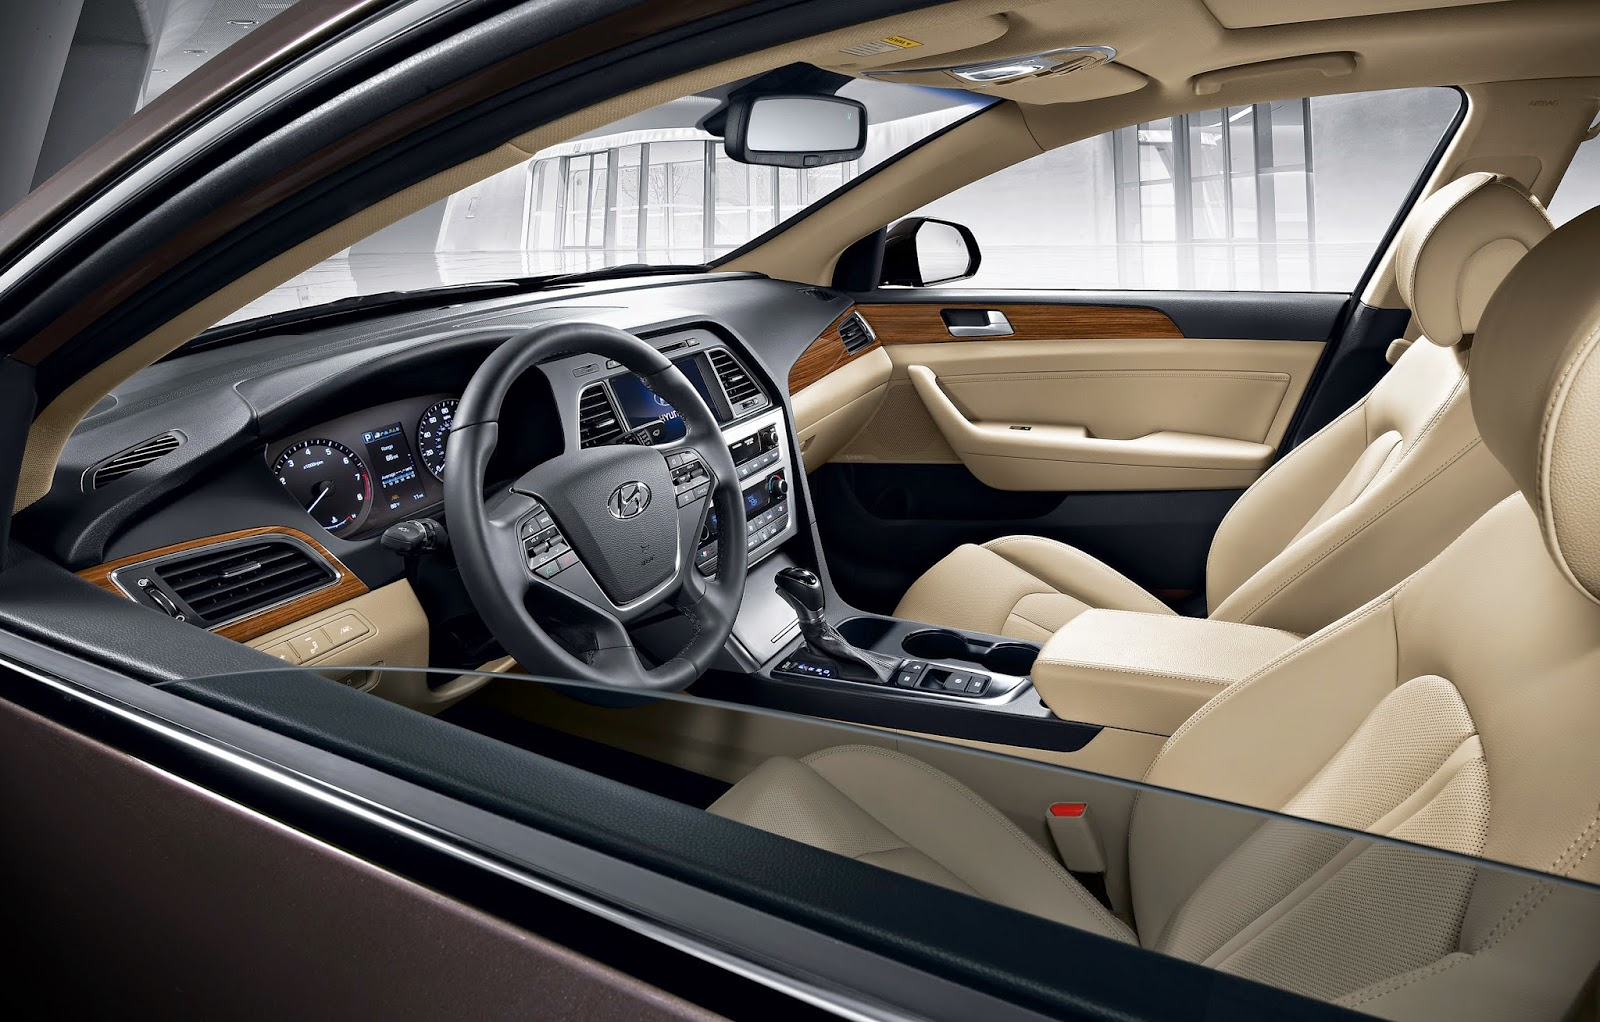 Interior view of 2015 Hyundai Sonata